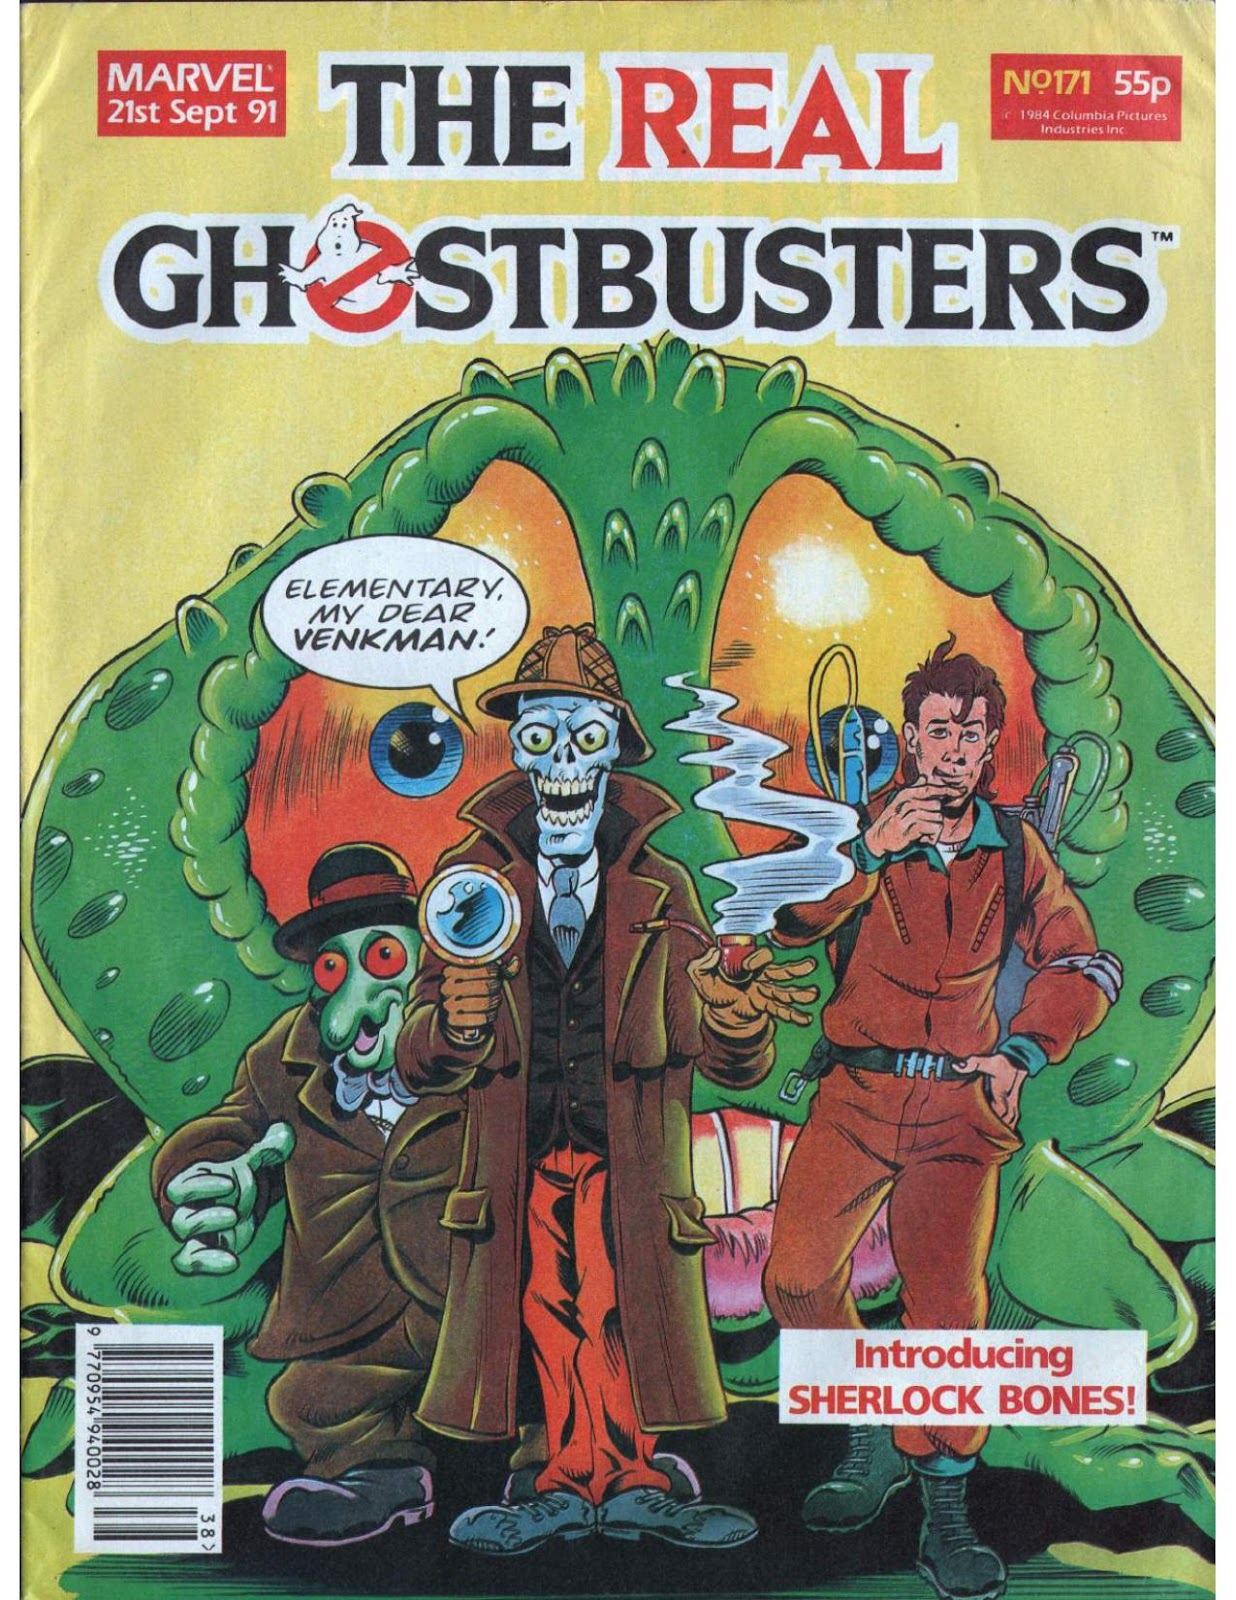 The Real Ghostbusters 171 Page 1